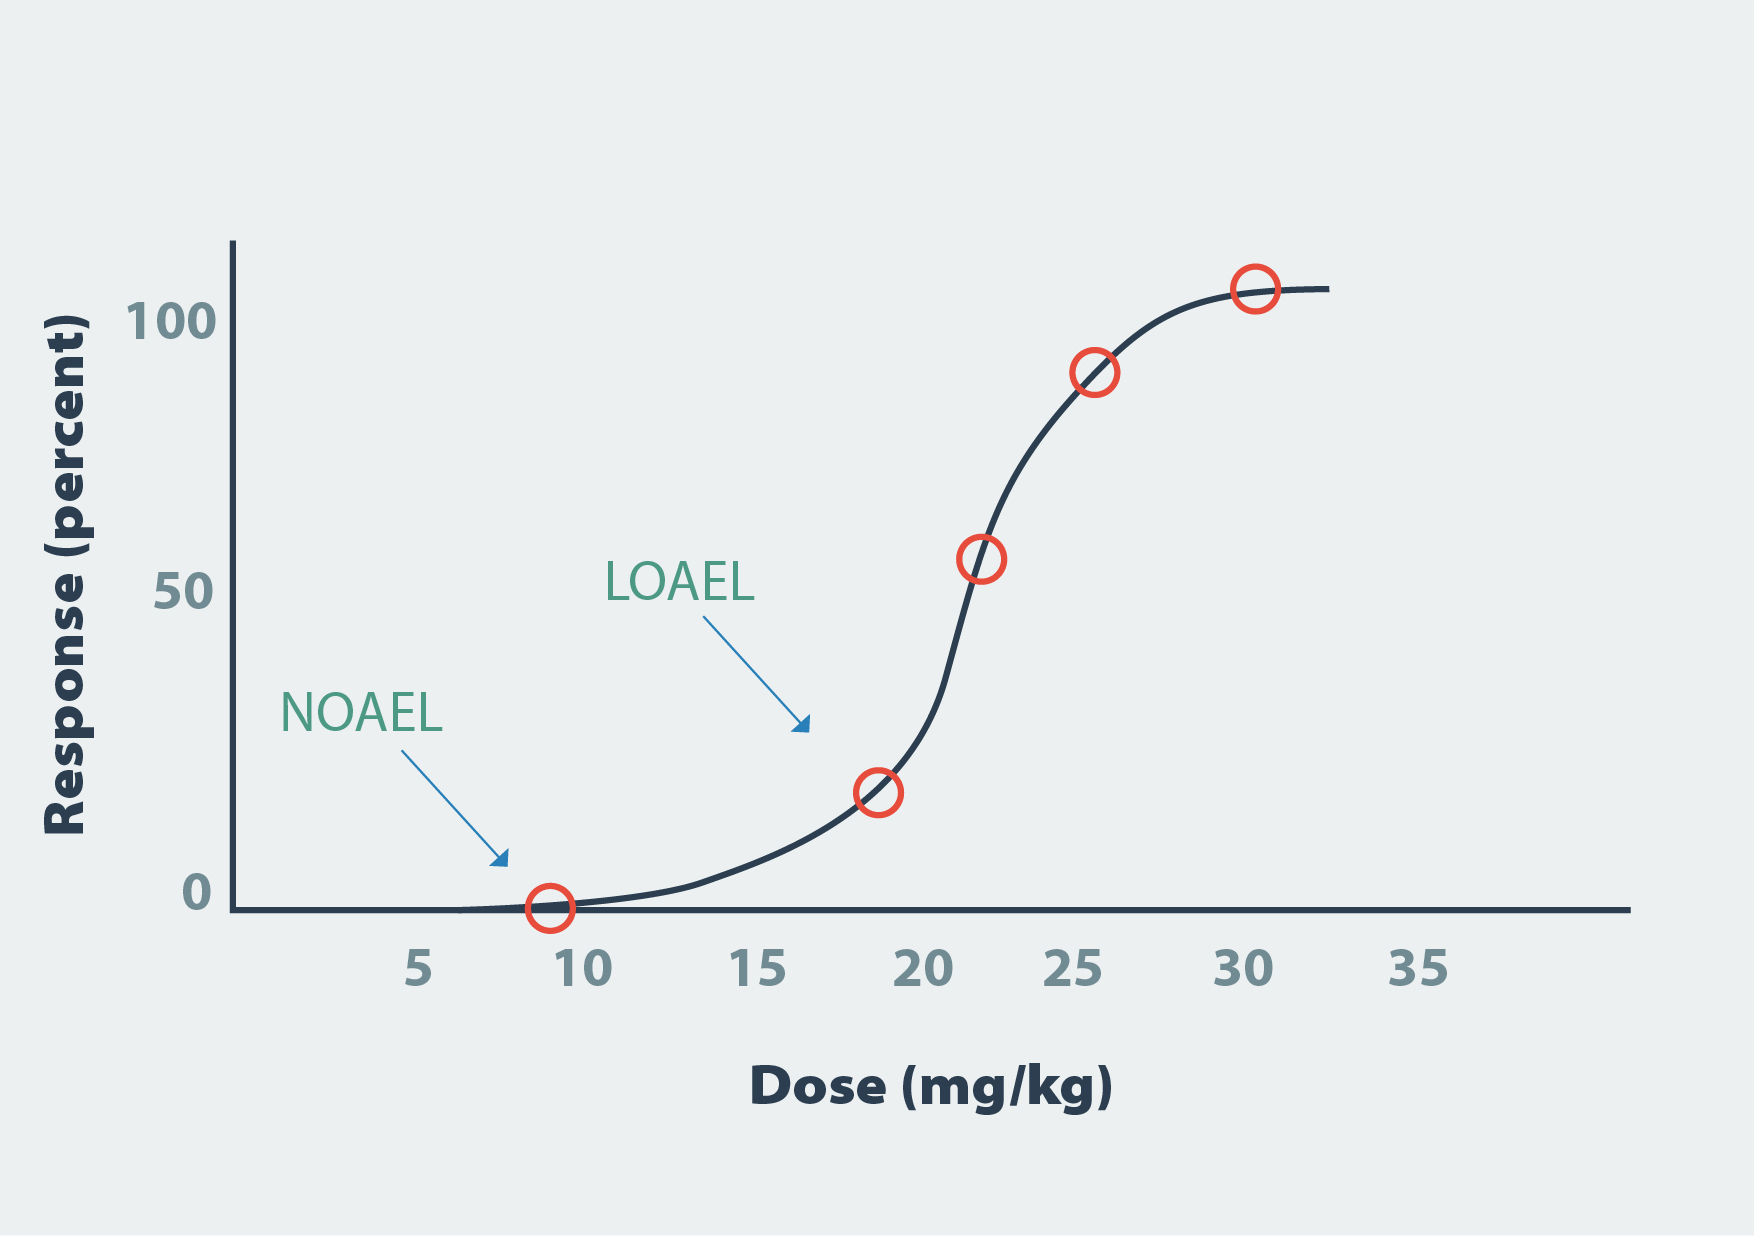 Dose-response graph to illustrate the relationship between the dose of a chemical and a toxic response. The highest dose at which no observable adverse effect is seen (NOAEL) and the lowest dose at which an adverse effect is observed (LOAEL) are indicated